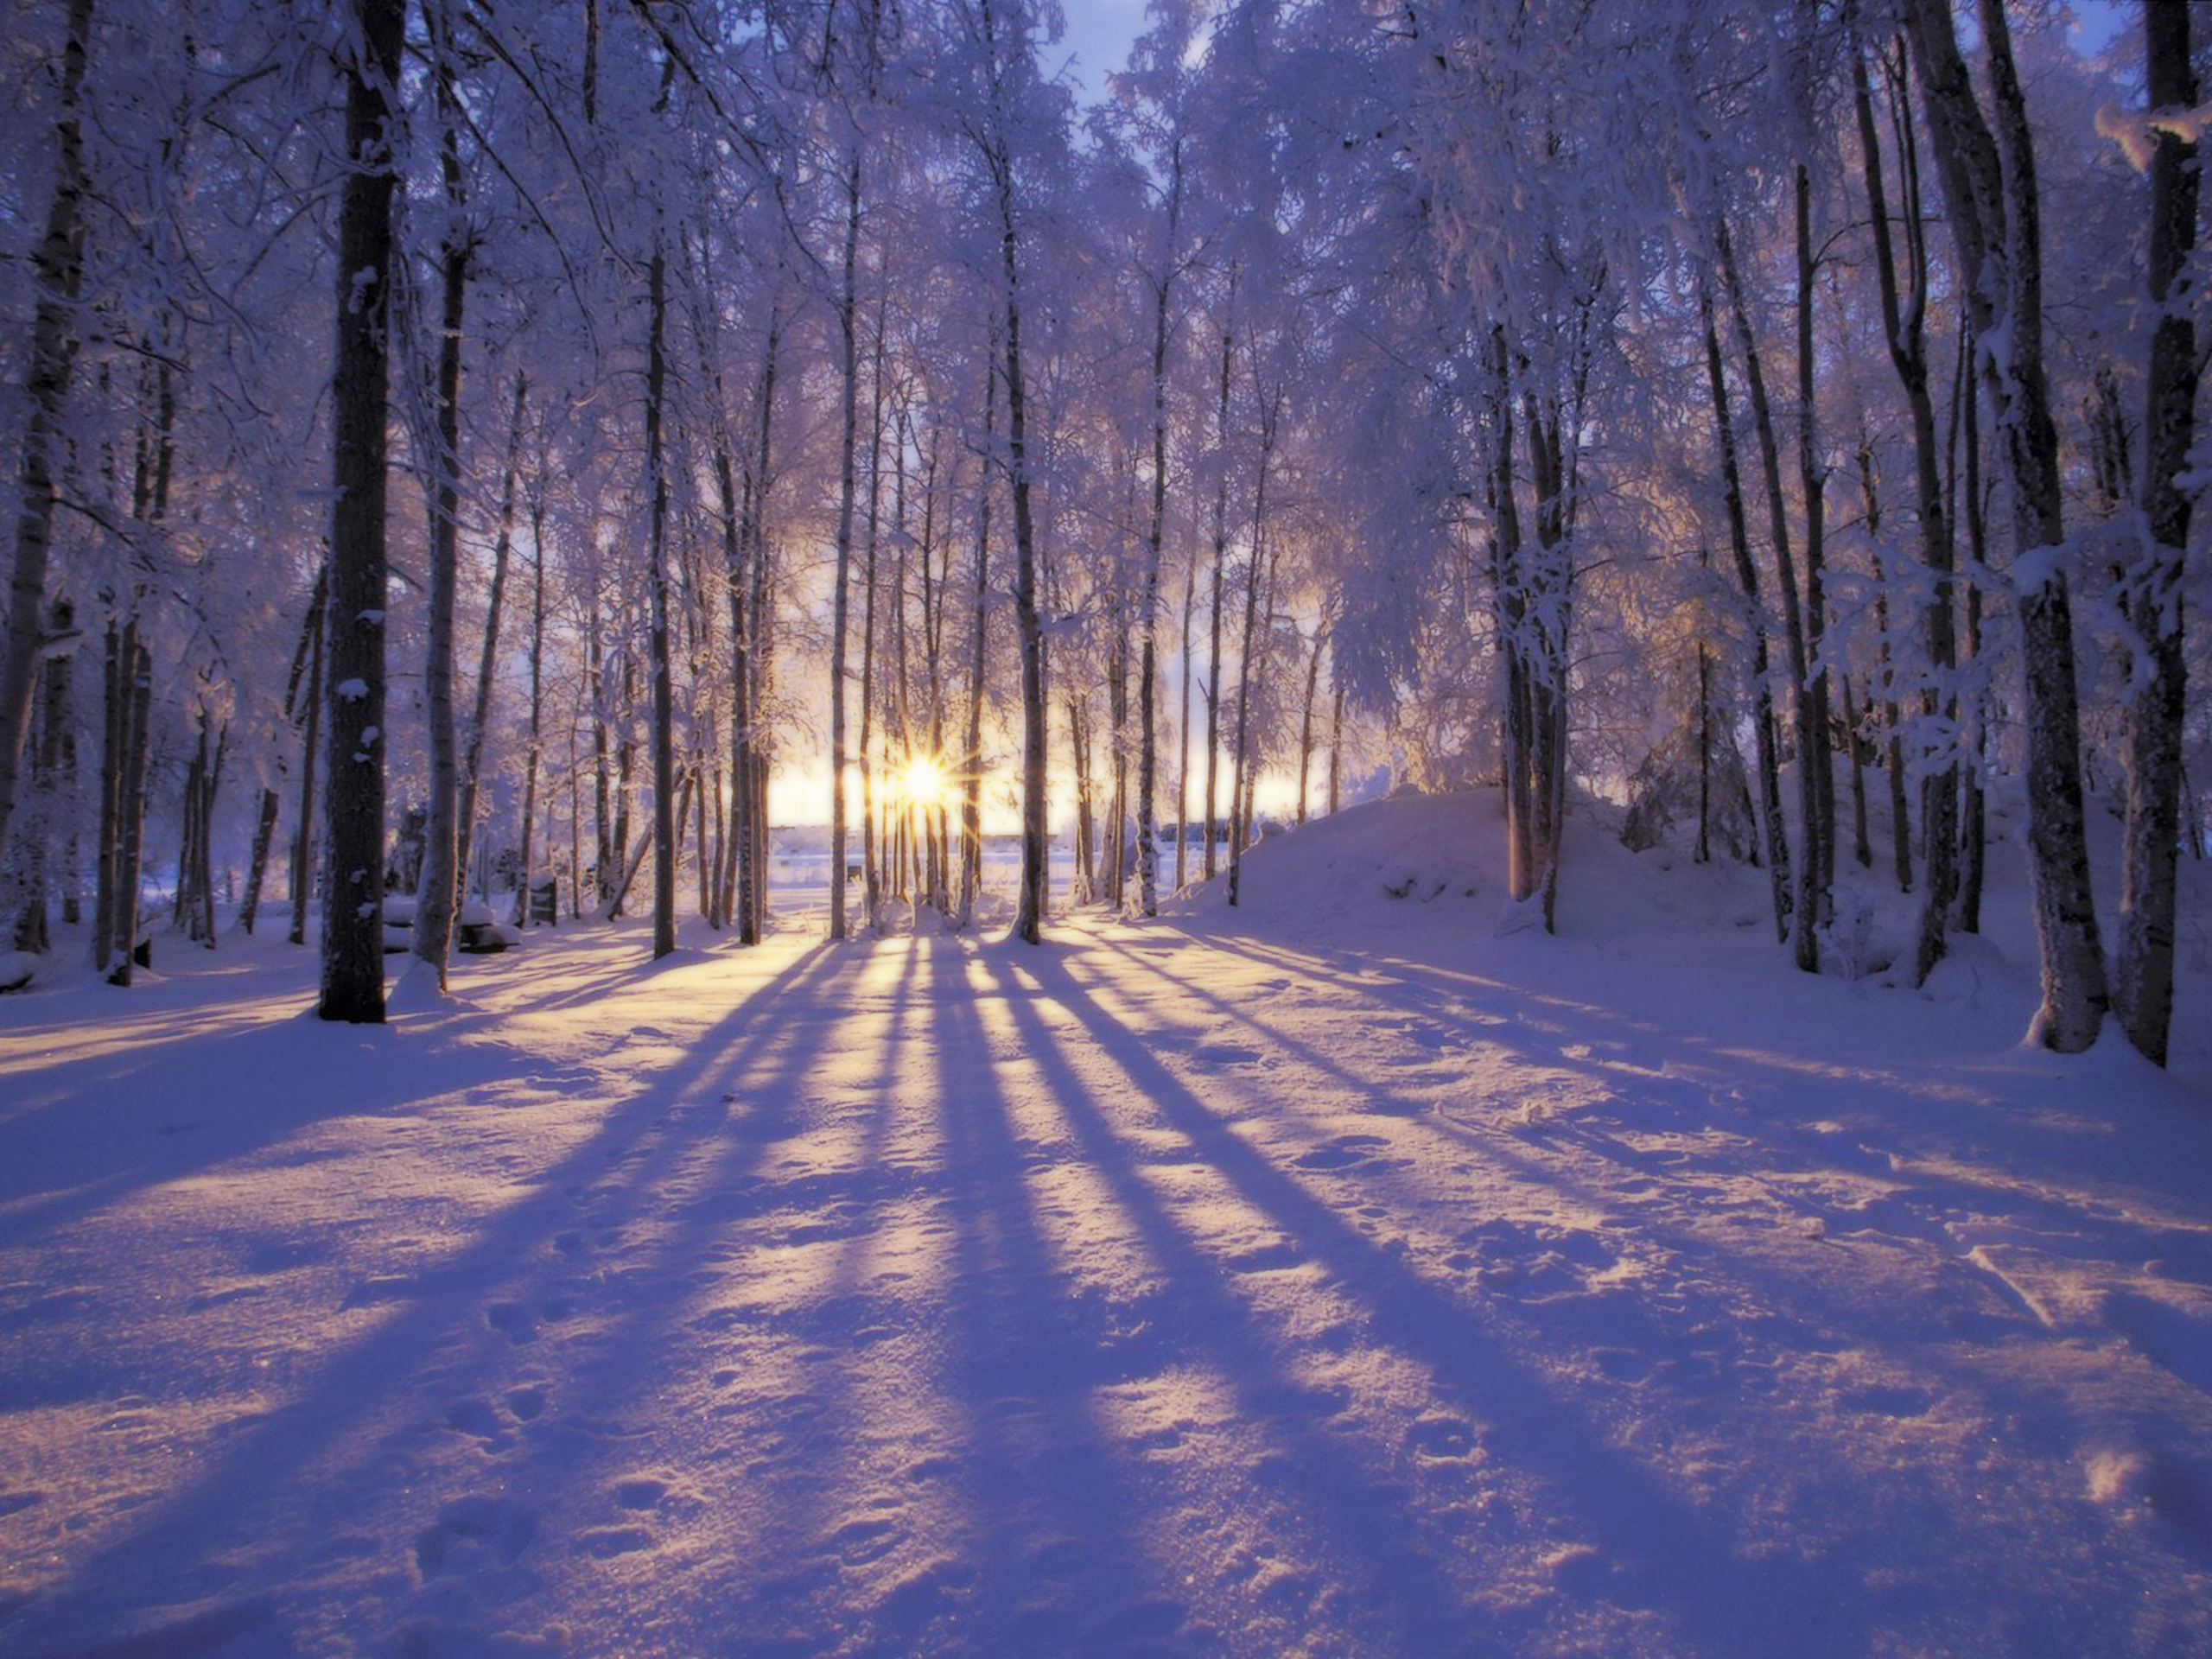 URL httpwwwsmscscomphotowinter scene desktop wallpaperhtml 2560x1920